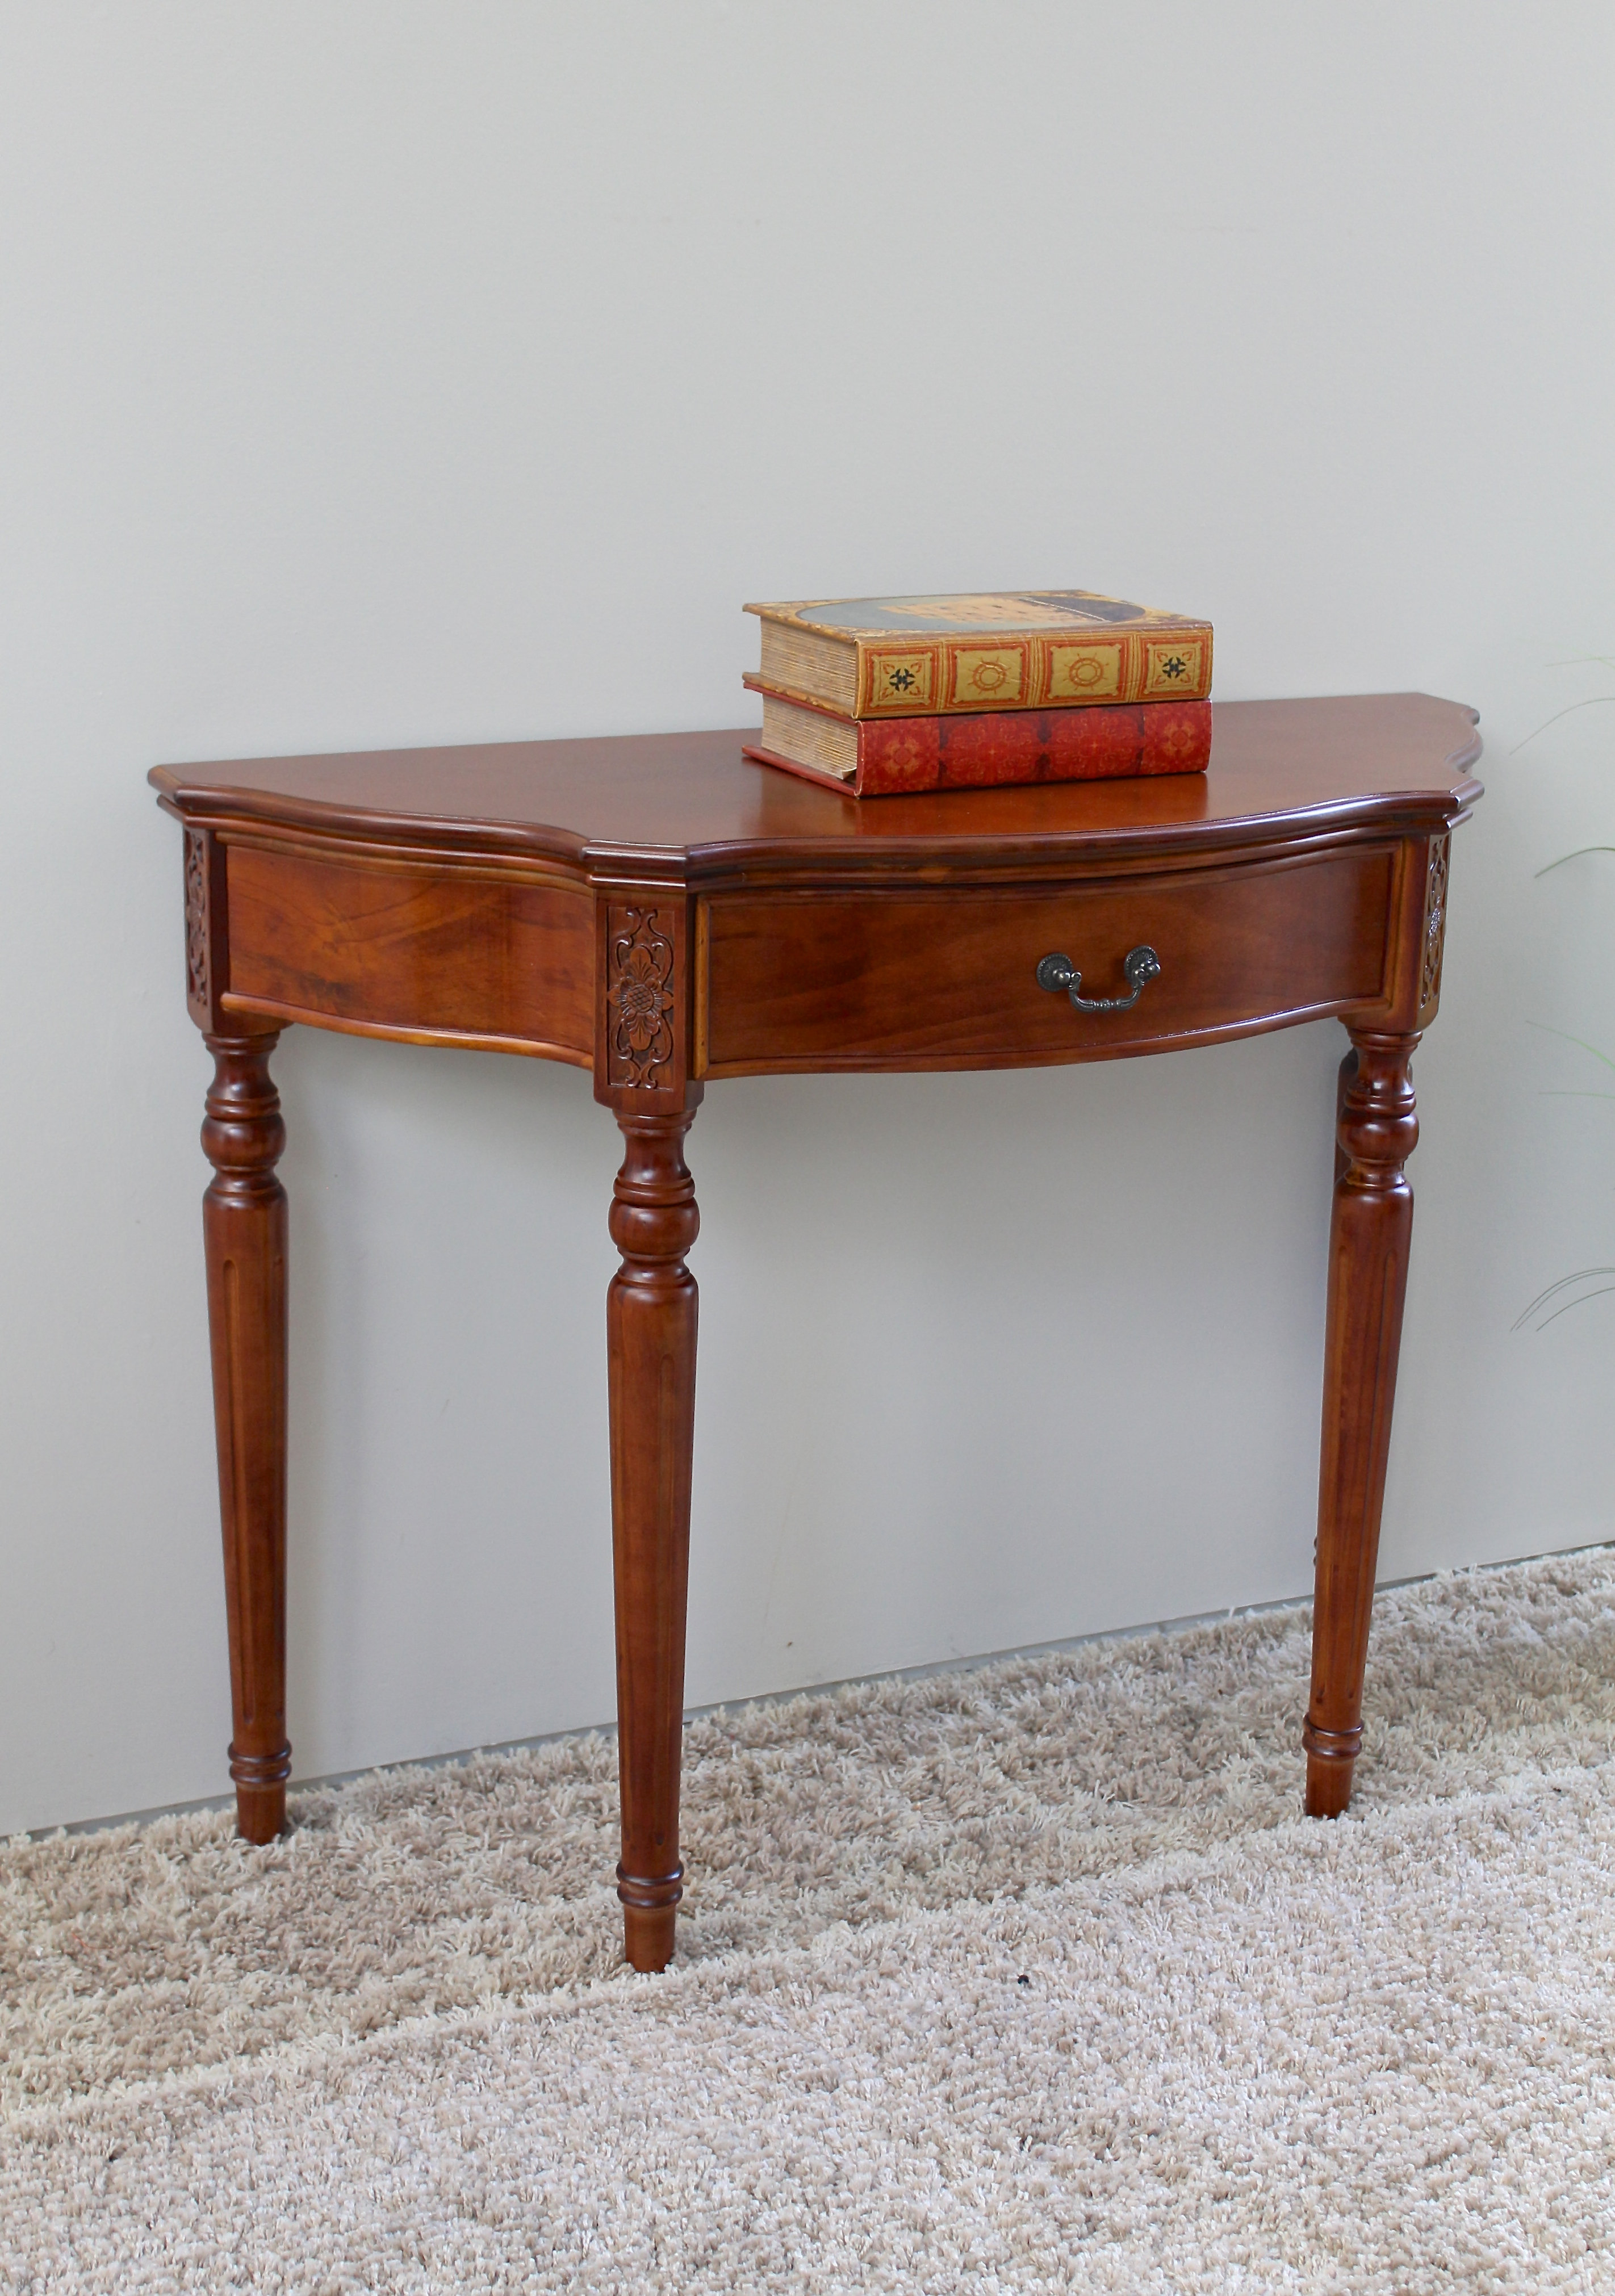 Carved Indian Furniture   Wayfair (View 8 of 30)